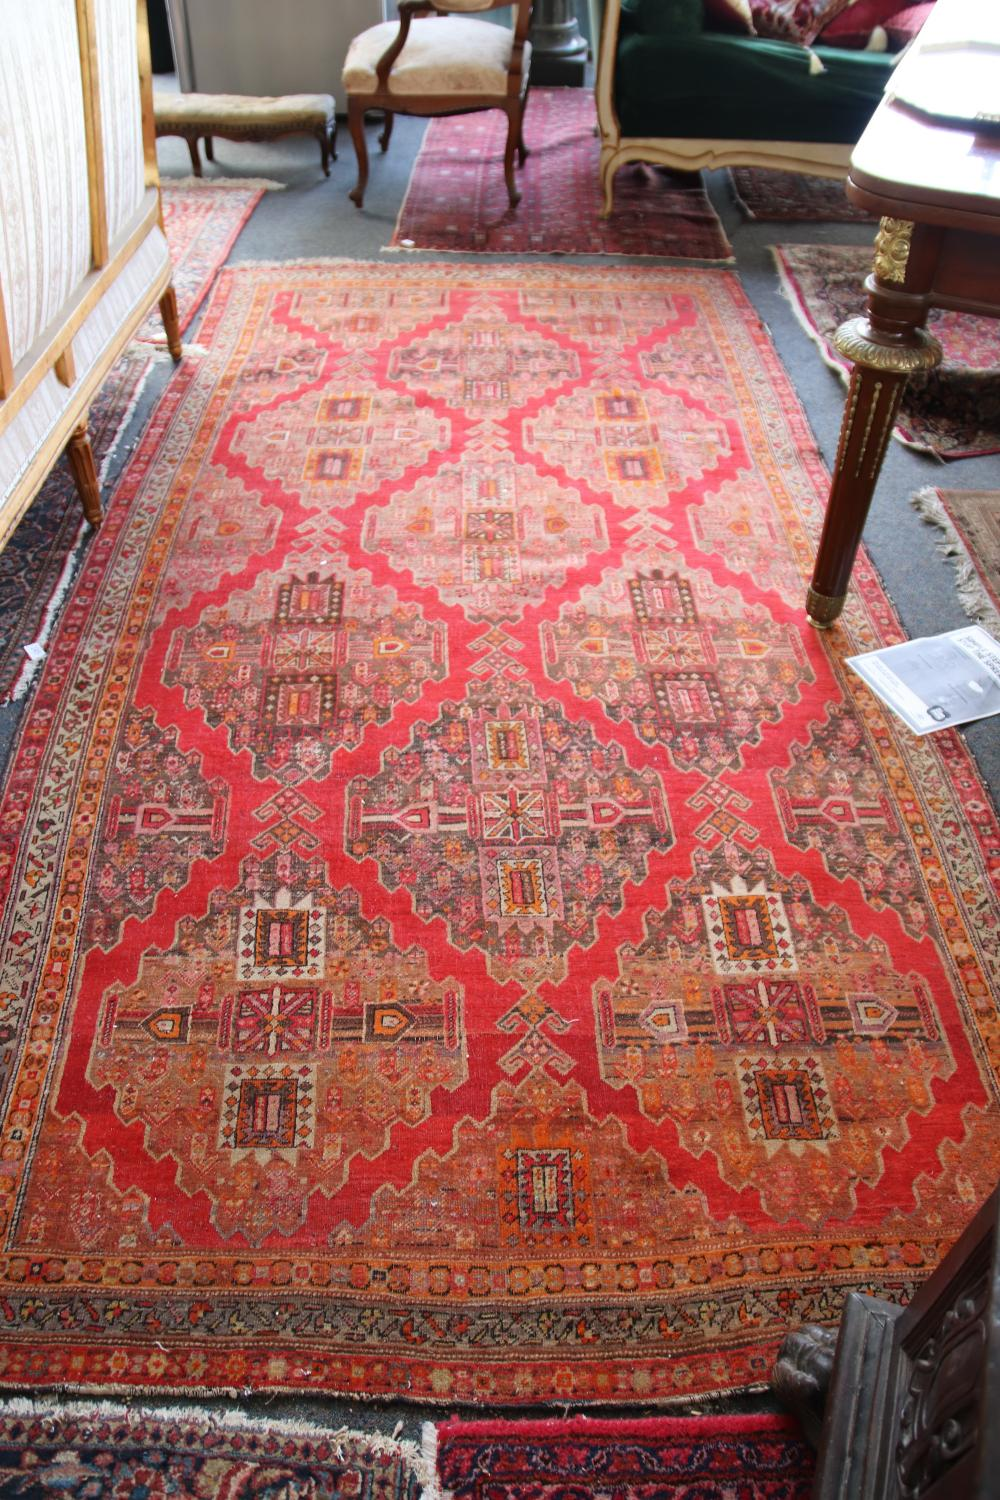 ANTIQUE PERSIAN HAND KNOTTED WOOL FLOOR KILIM, RED, ORANGE AND BROWN MEDALLION AND BORDER PATTERN, MEASURES 150CM X 300CM (WEAR AND FRAYED EDGES)